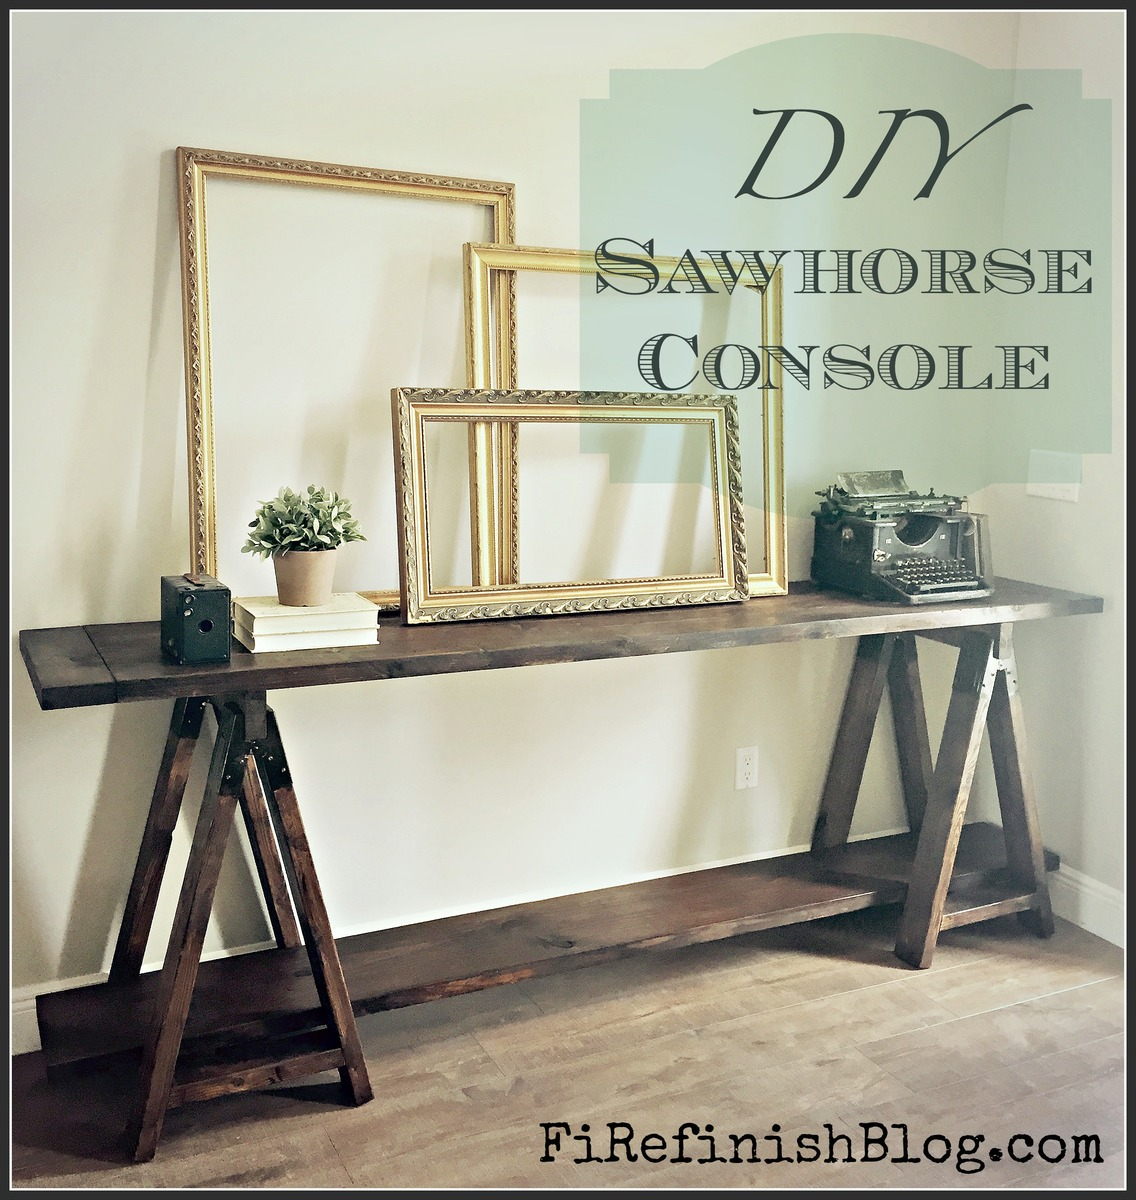 Diy crate console table - Diy Sawhorse Console Table